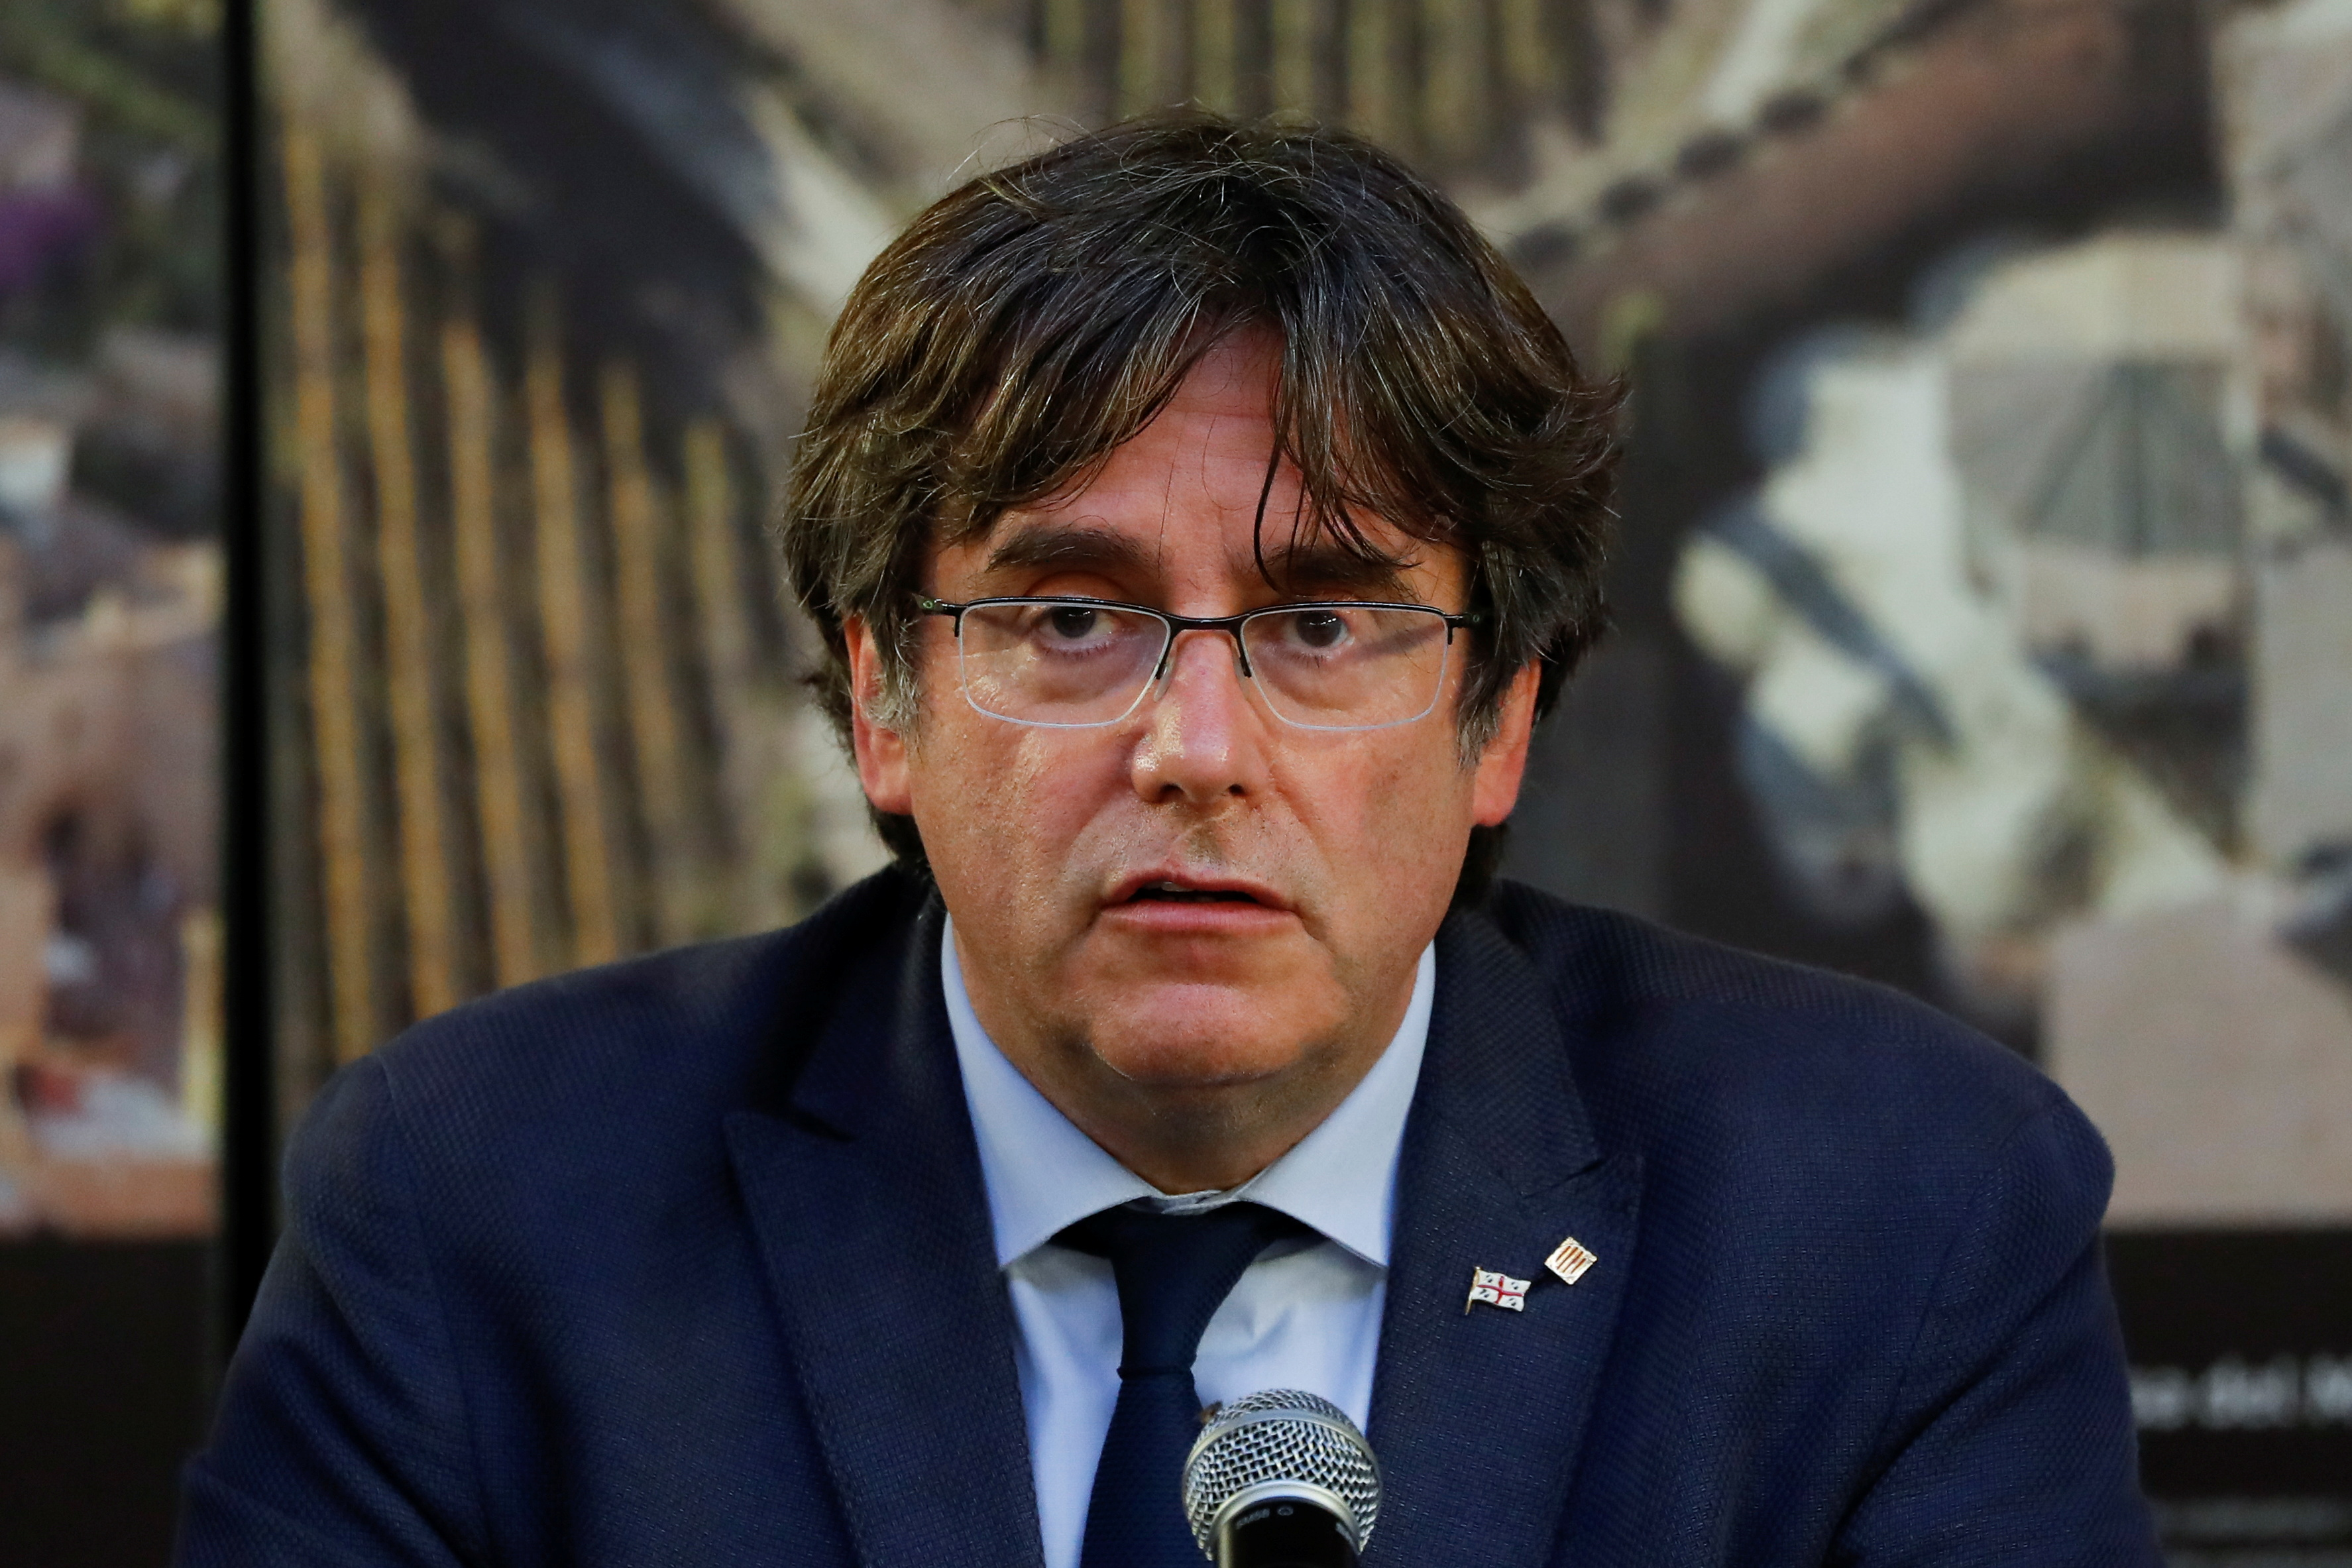 Former Catalan government head Carles Puigdemont attends a news conference in Alghero, Italy, September 26, 2021. REUTERS/Yara Nardi